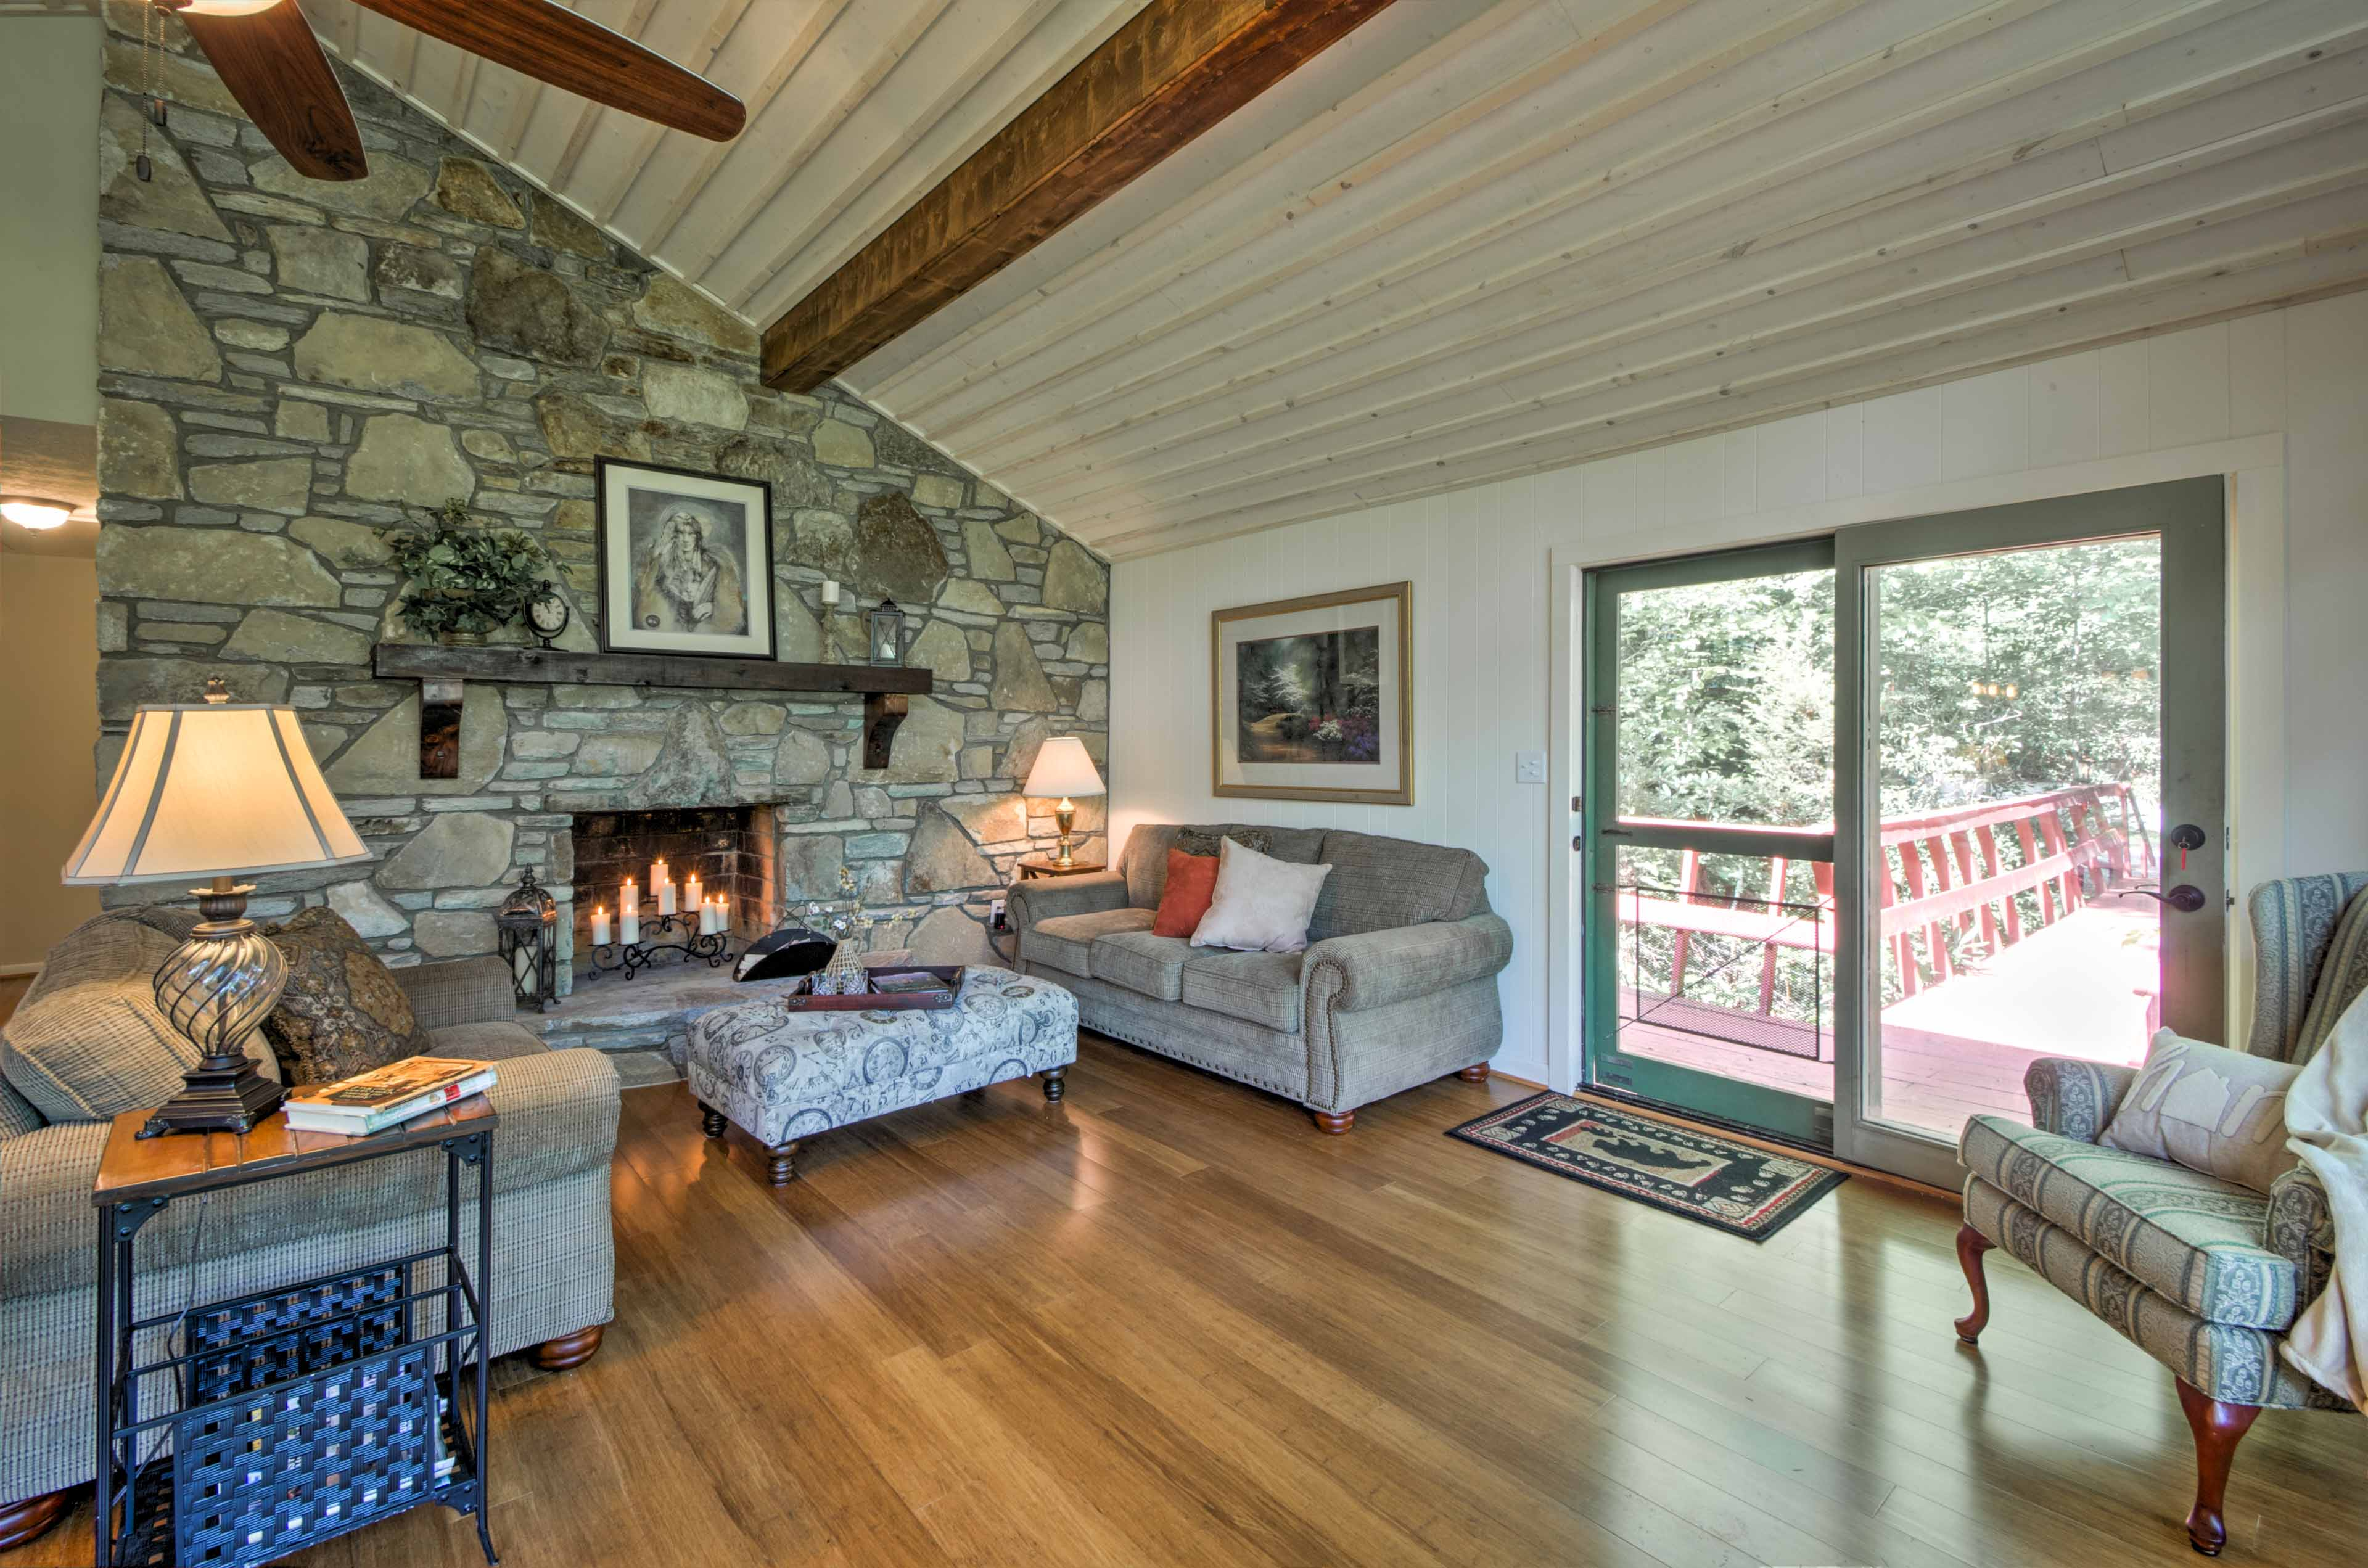 Step out to the deck through the glass door in the living room.